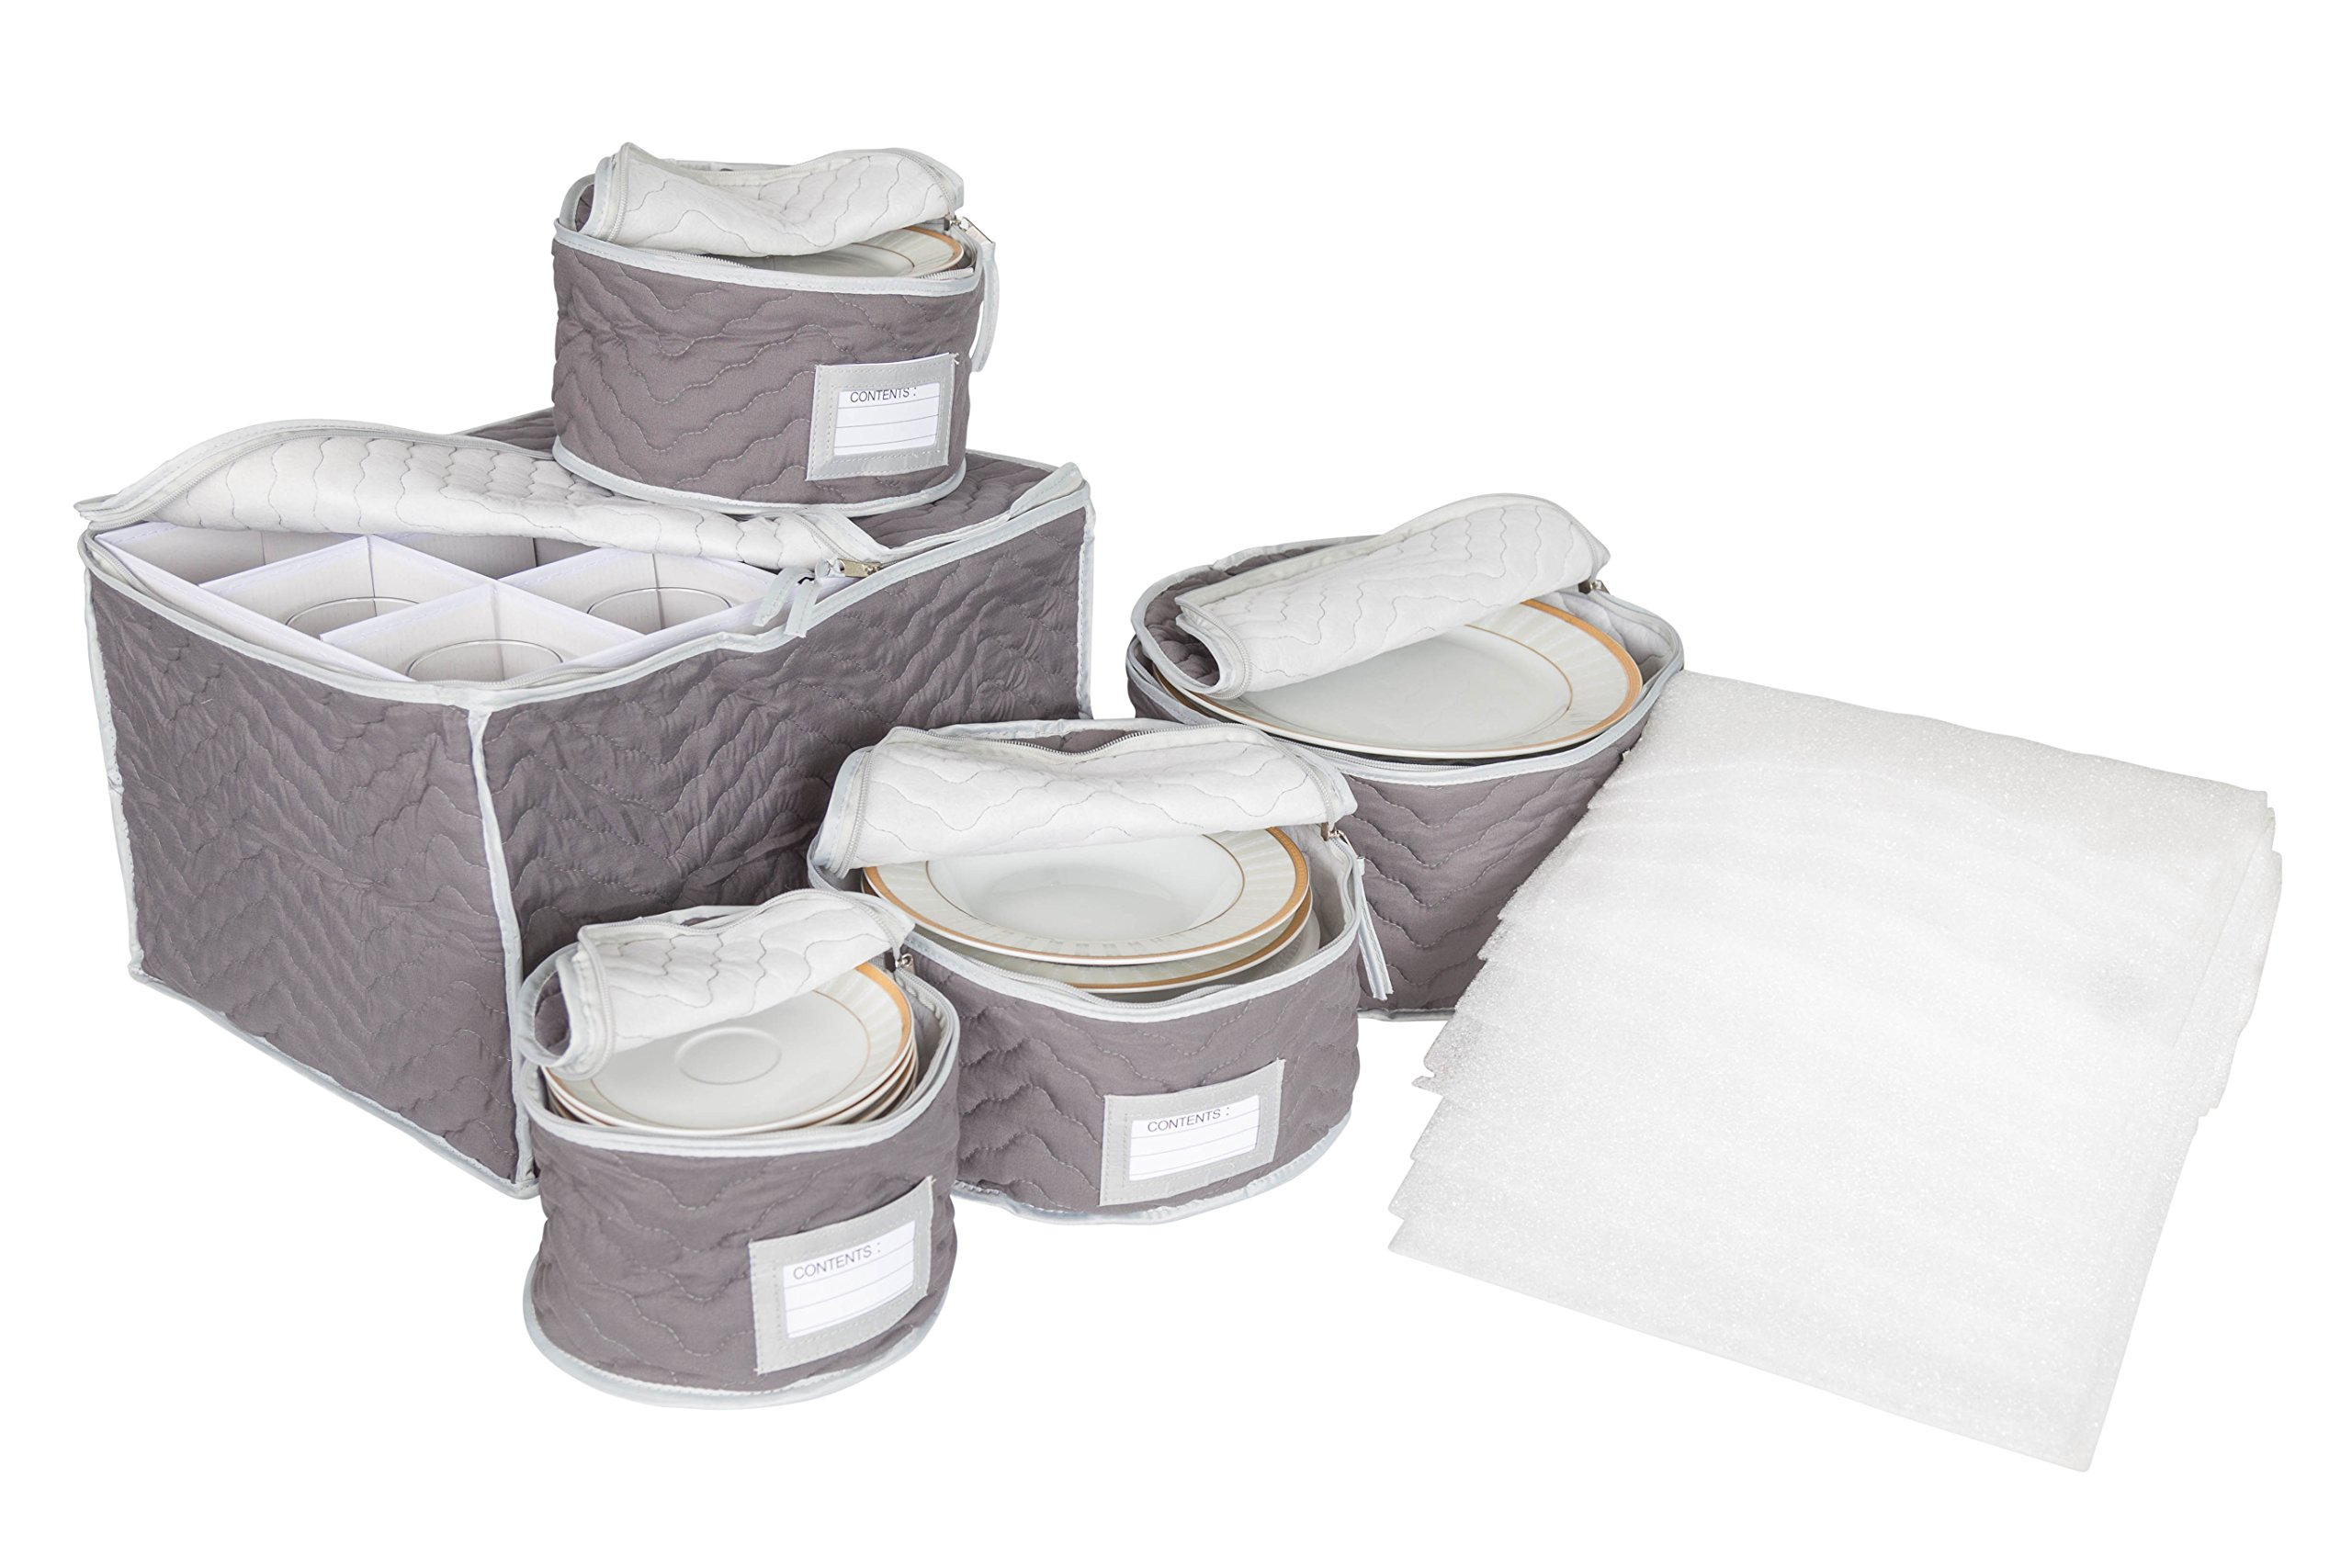 China and Stemware Storage Set Deluxe Microfiber with Braidz Foam Padding - Grey by Richards